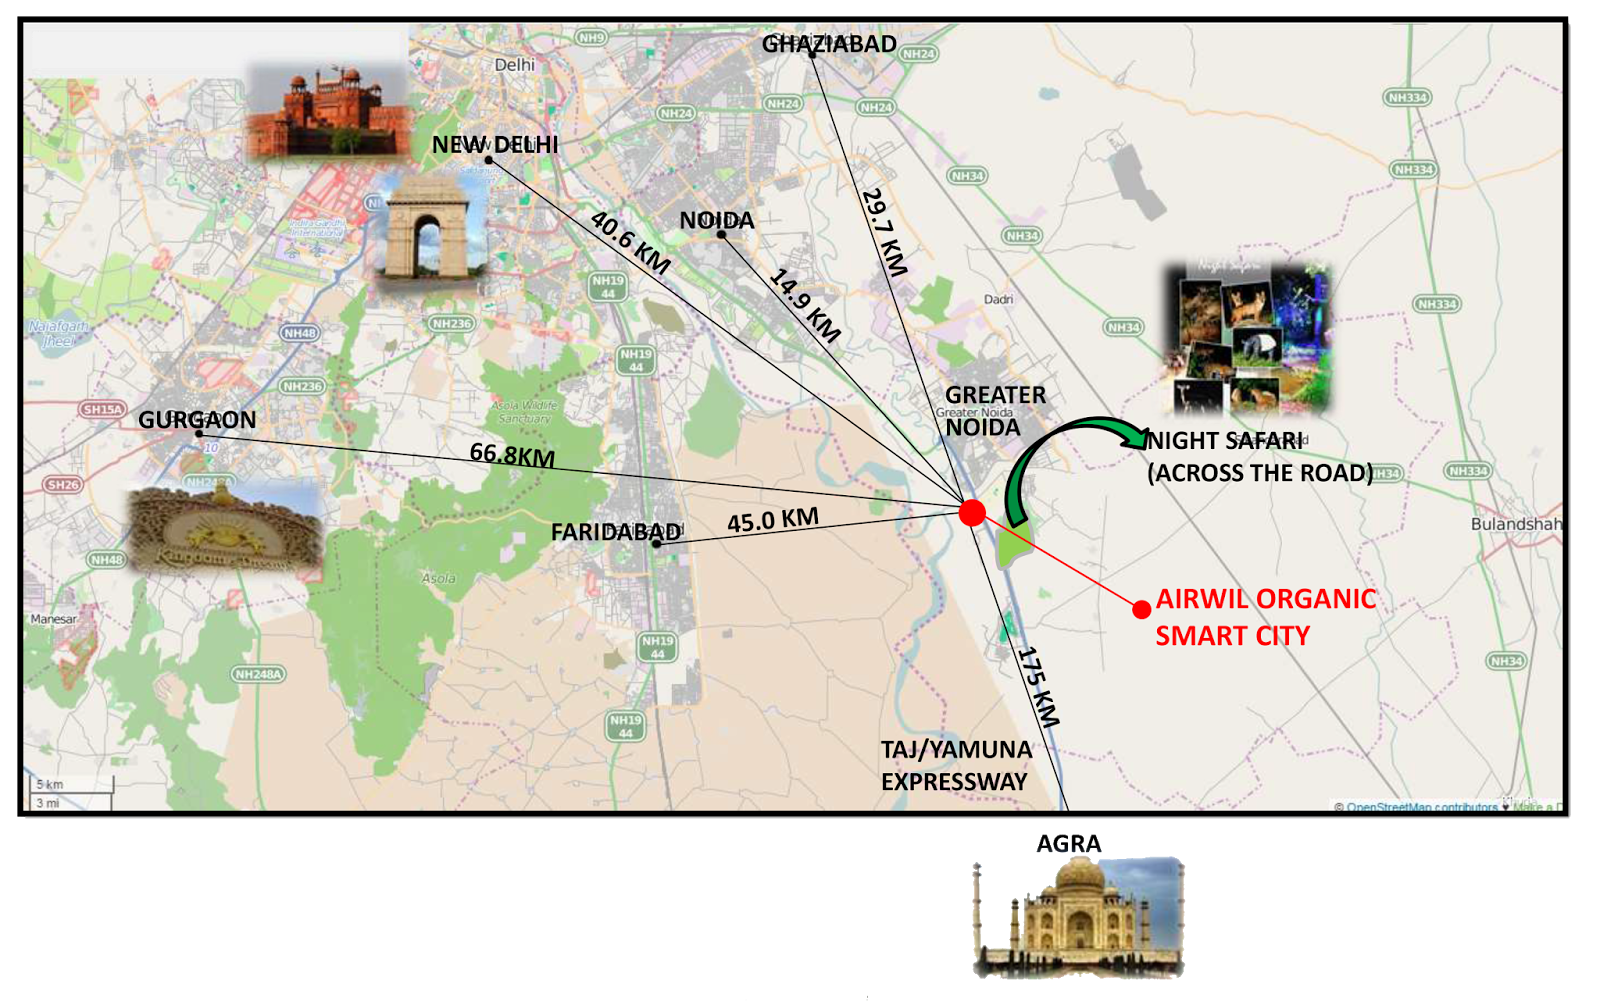 Airwil Smart City Location Map